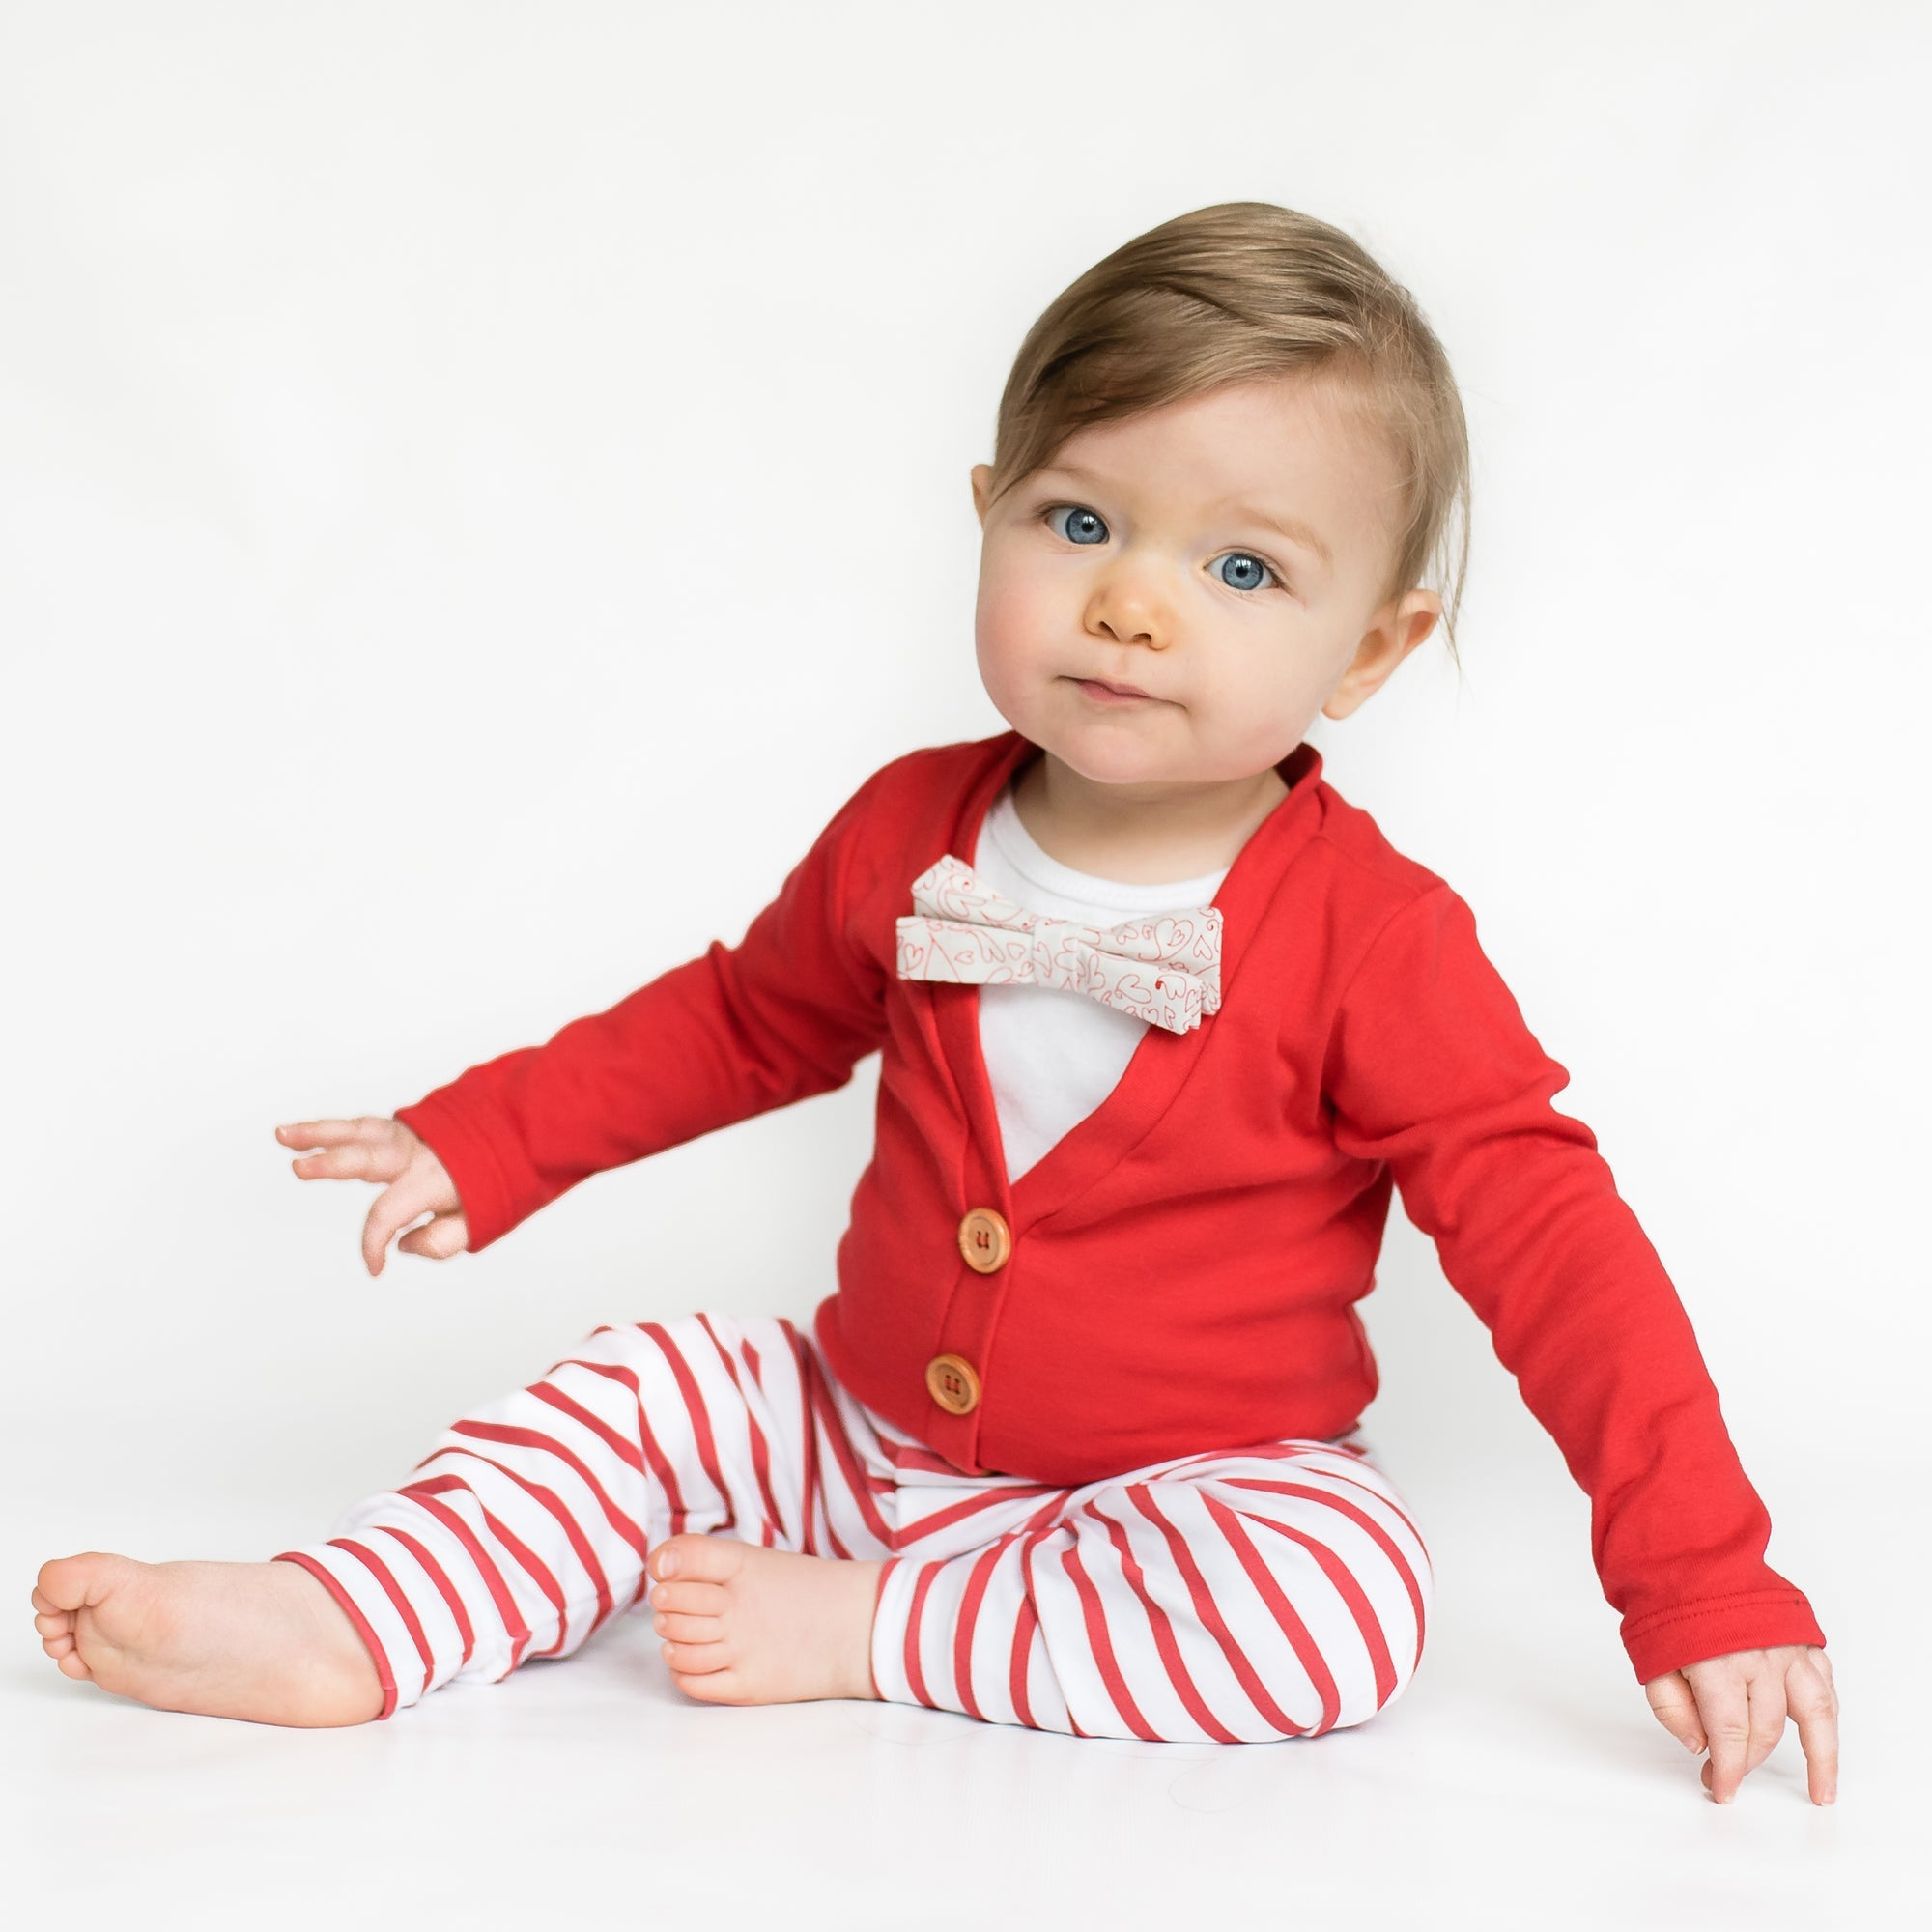 Baby Boy Valentine's Day Outfits: 7 Cardigan Onesie Ideas